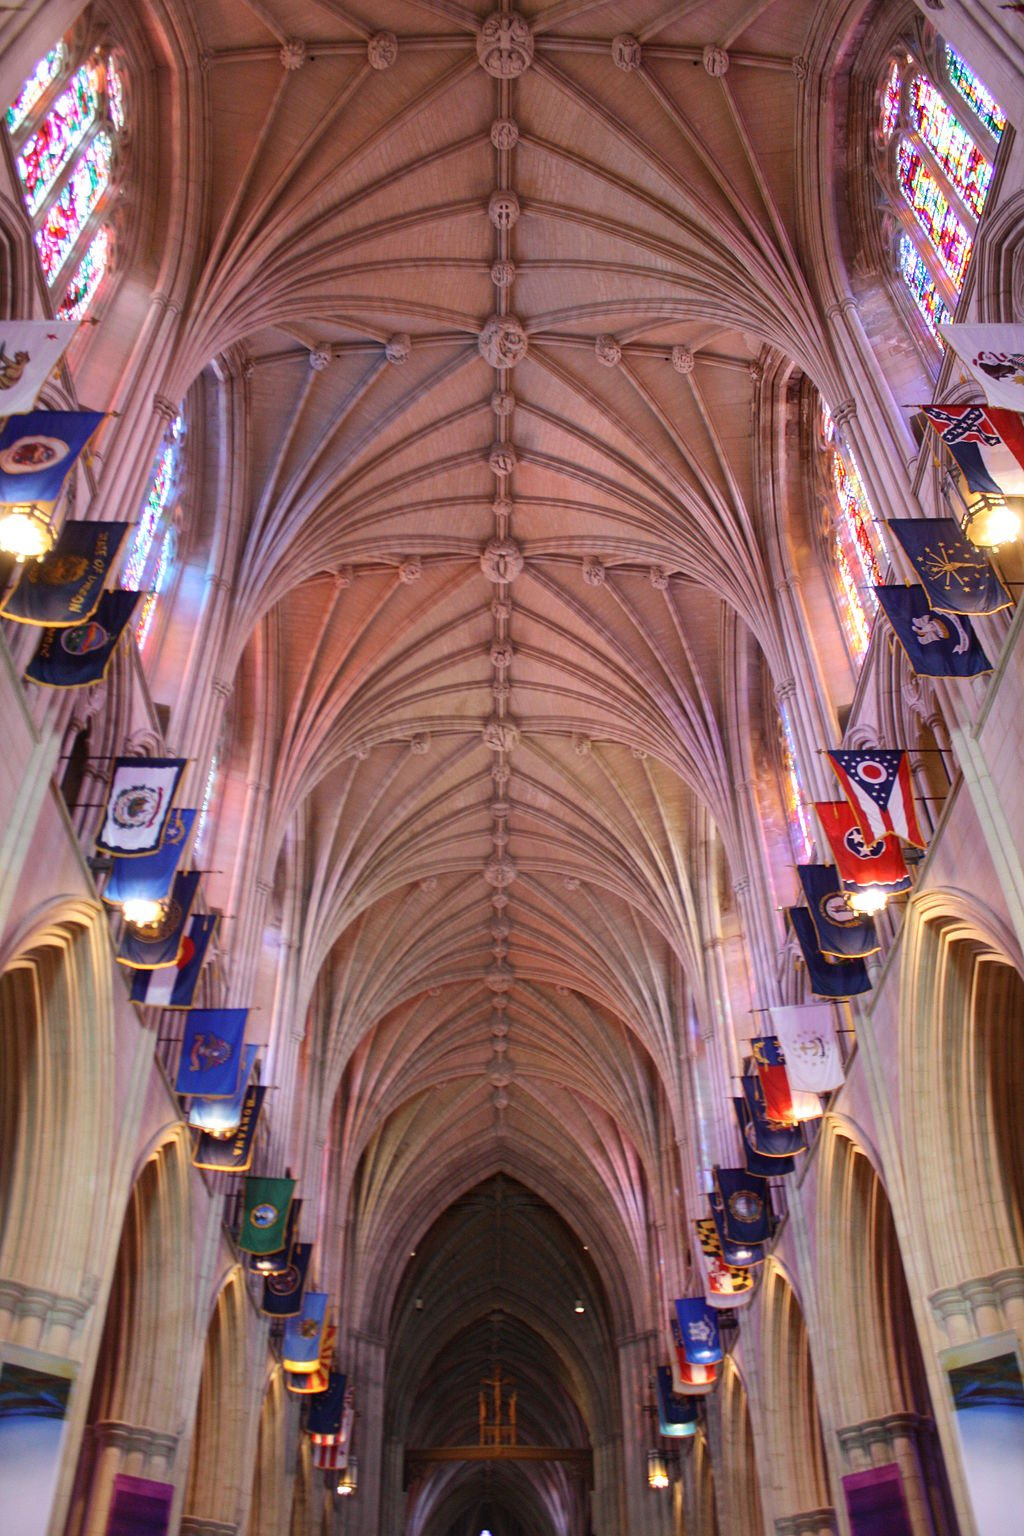 State flags hang from the nave of the Cathedral. Photo by Mina Elias, Wikimedia.